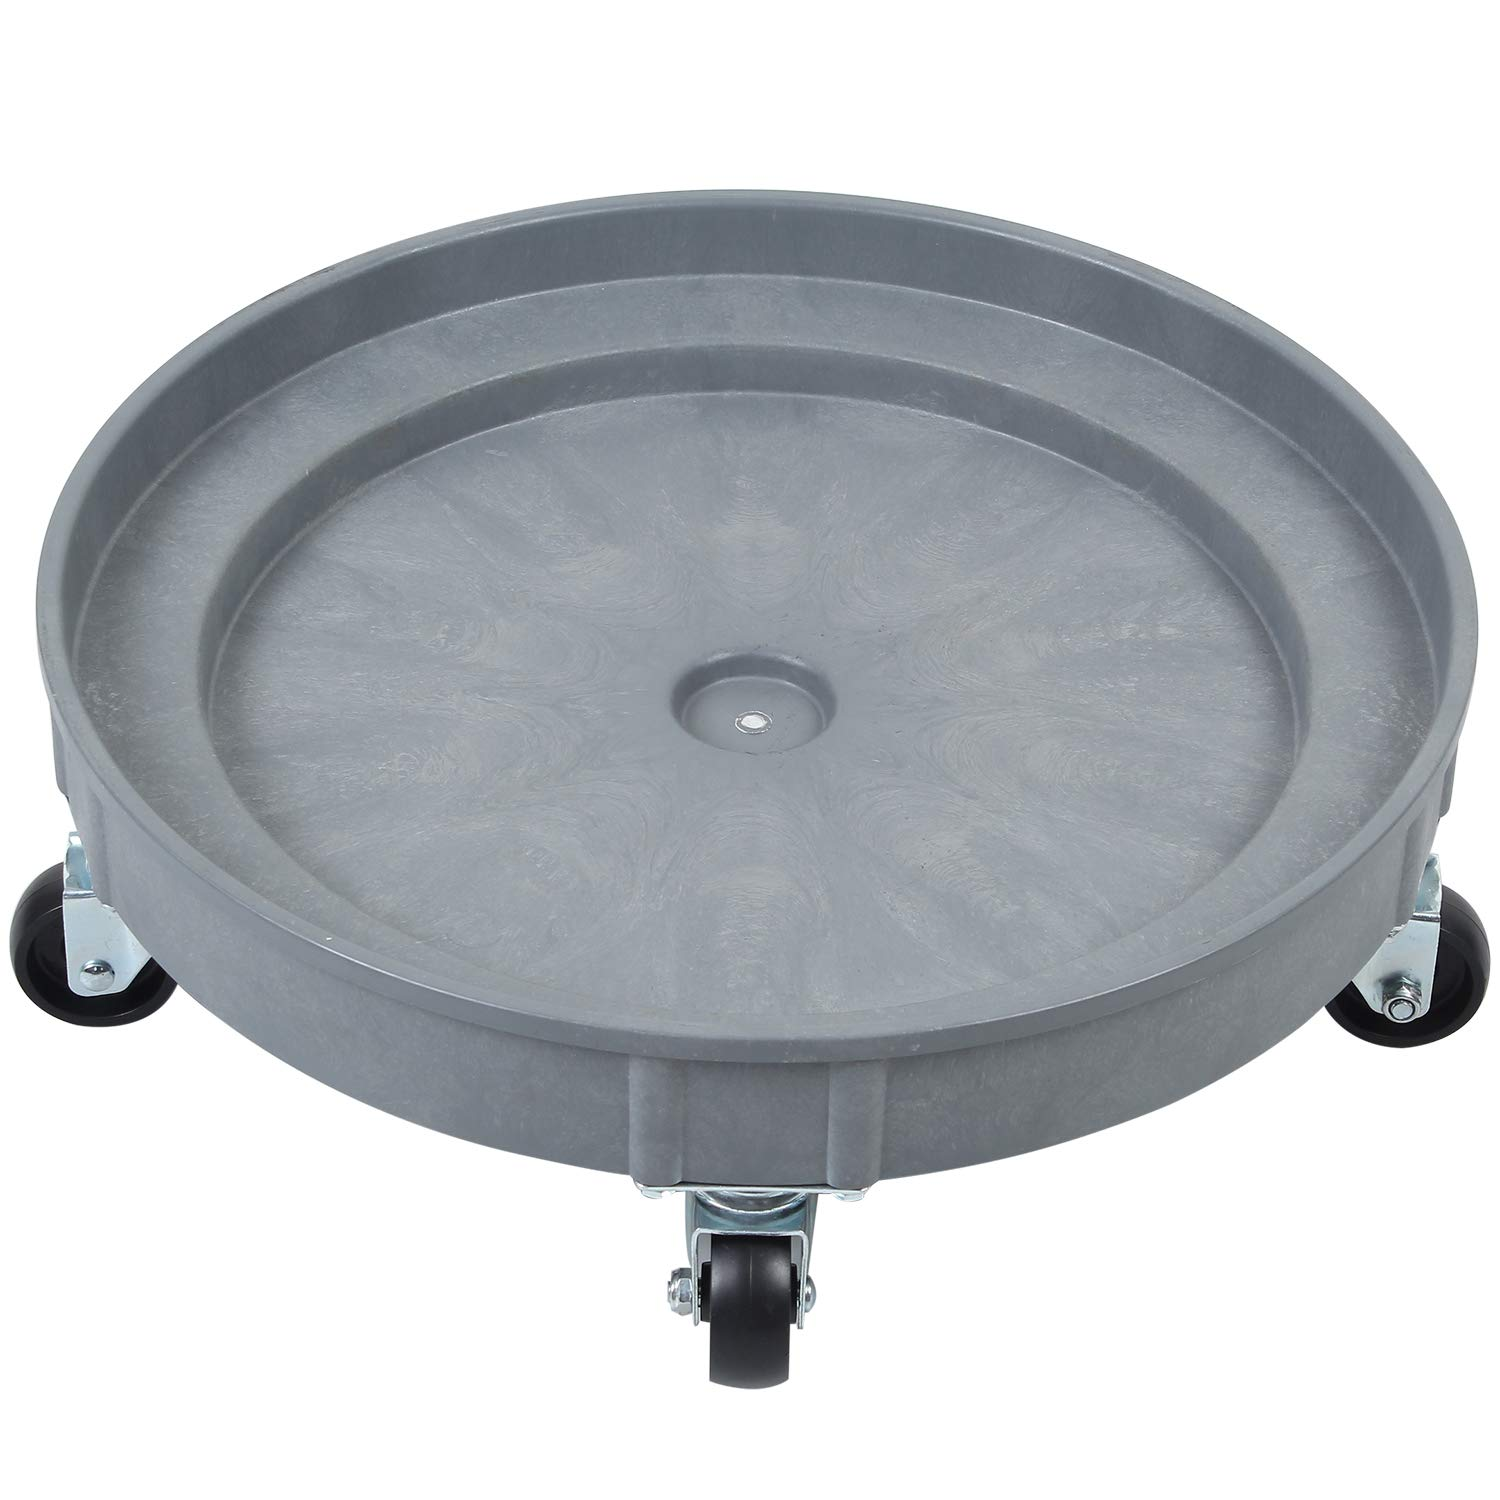 Amarite Plastic Drum Dolly for 30 gal and 55 gal Drums, 900 lb. Capacity